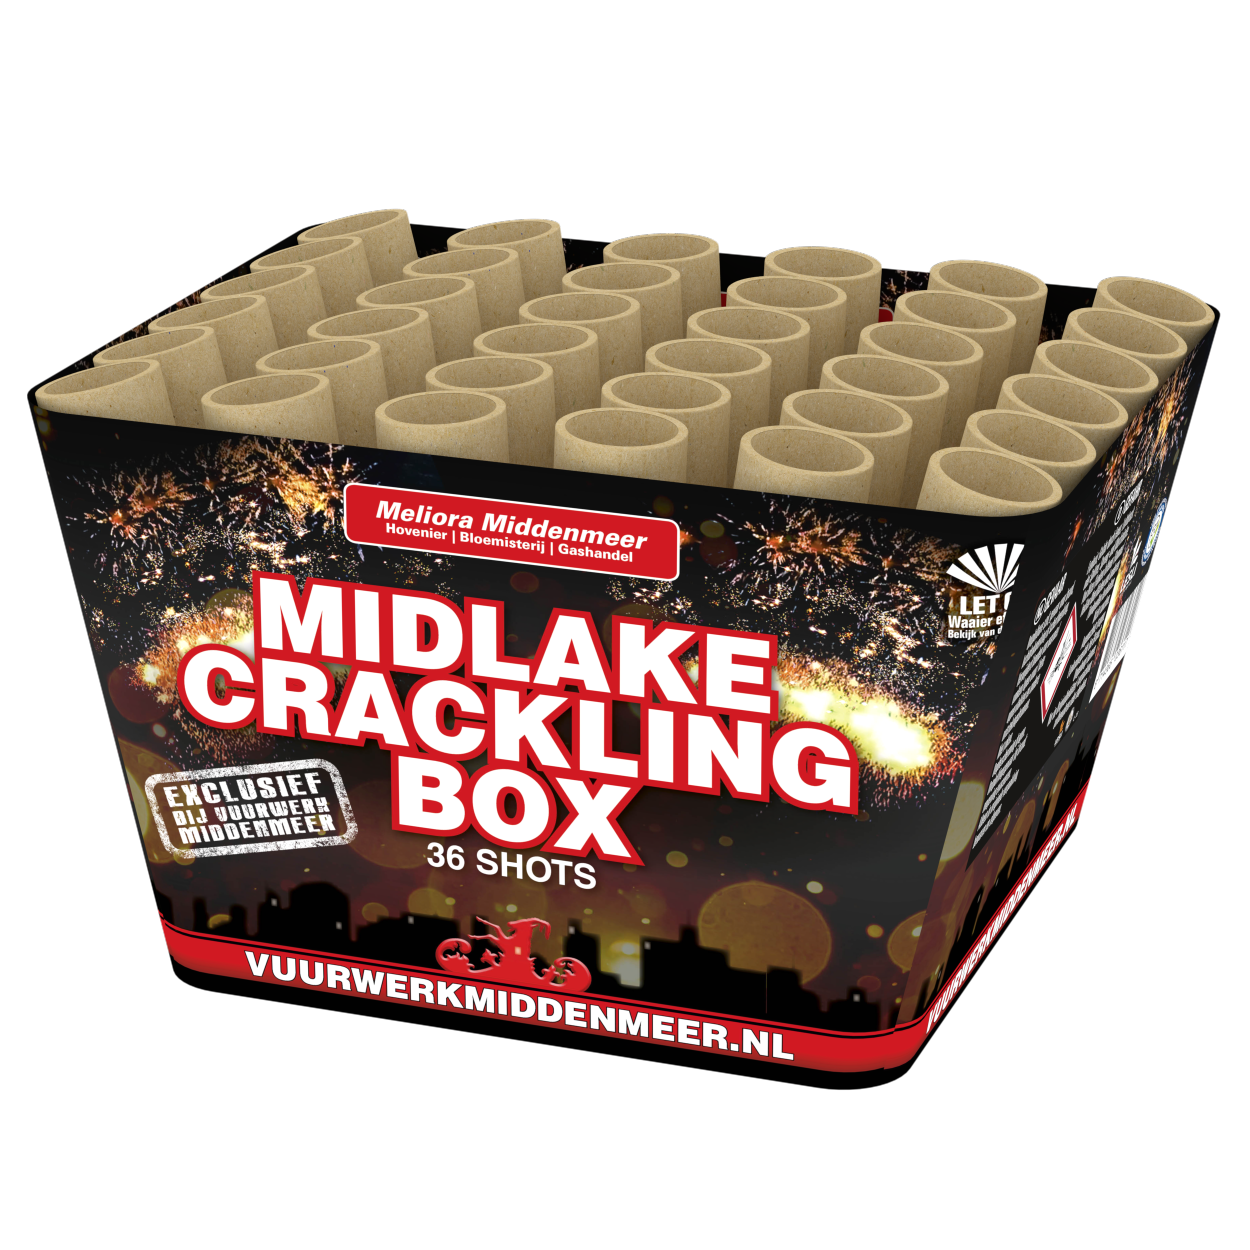 Midlake Crackling box